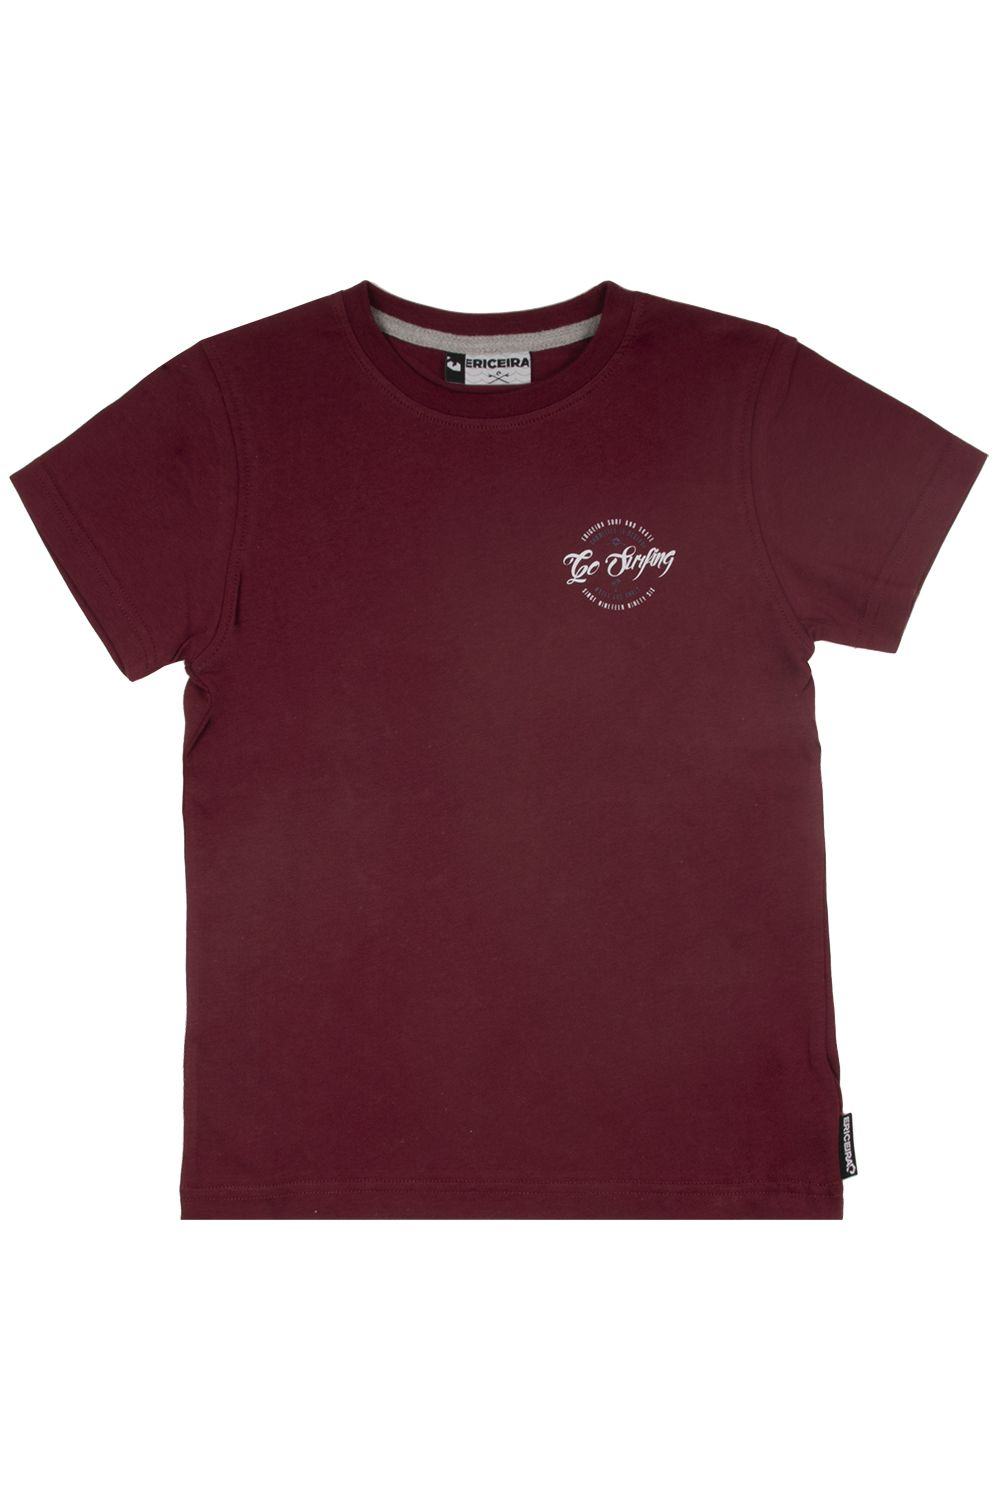 Ericeira Surf Skate T-Shirt CAPE ST FRANCIS Red Earth